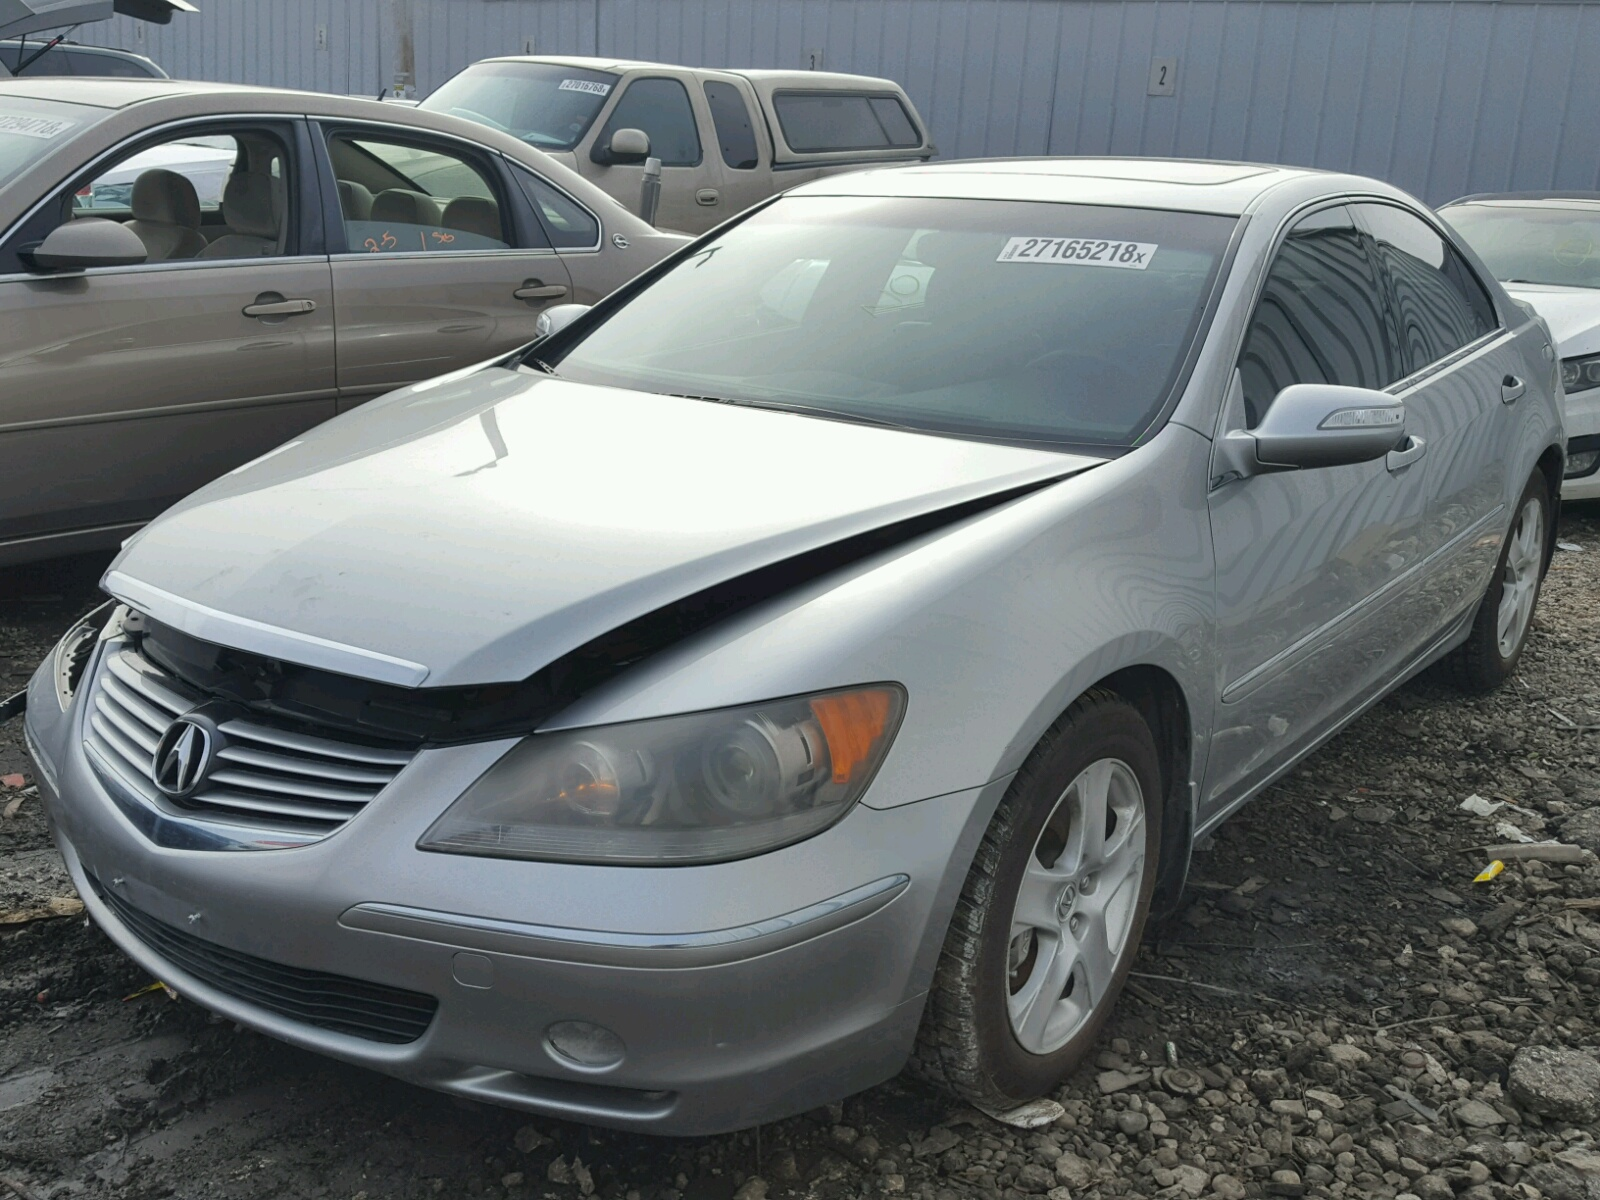 damage rl of sale carfinder view for auto en auctions acura md copart lot salvage online rear baltimore gray cert on in